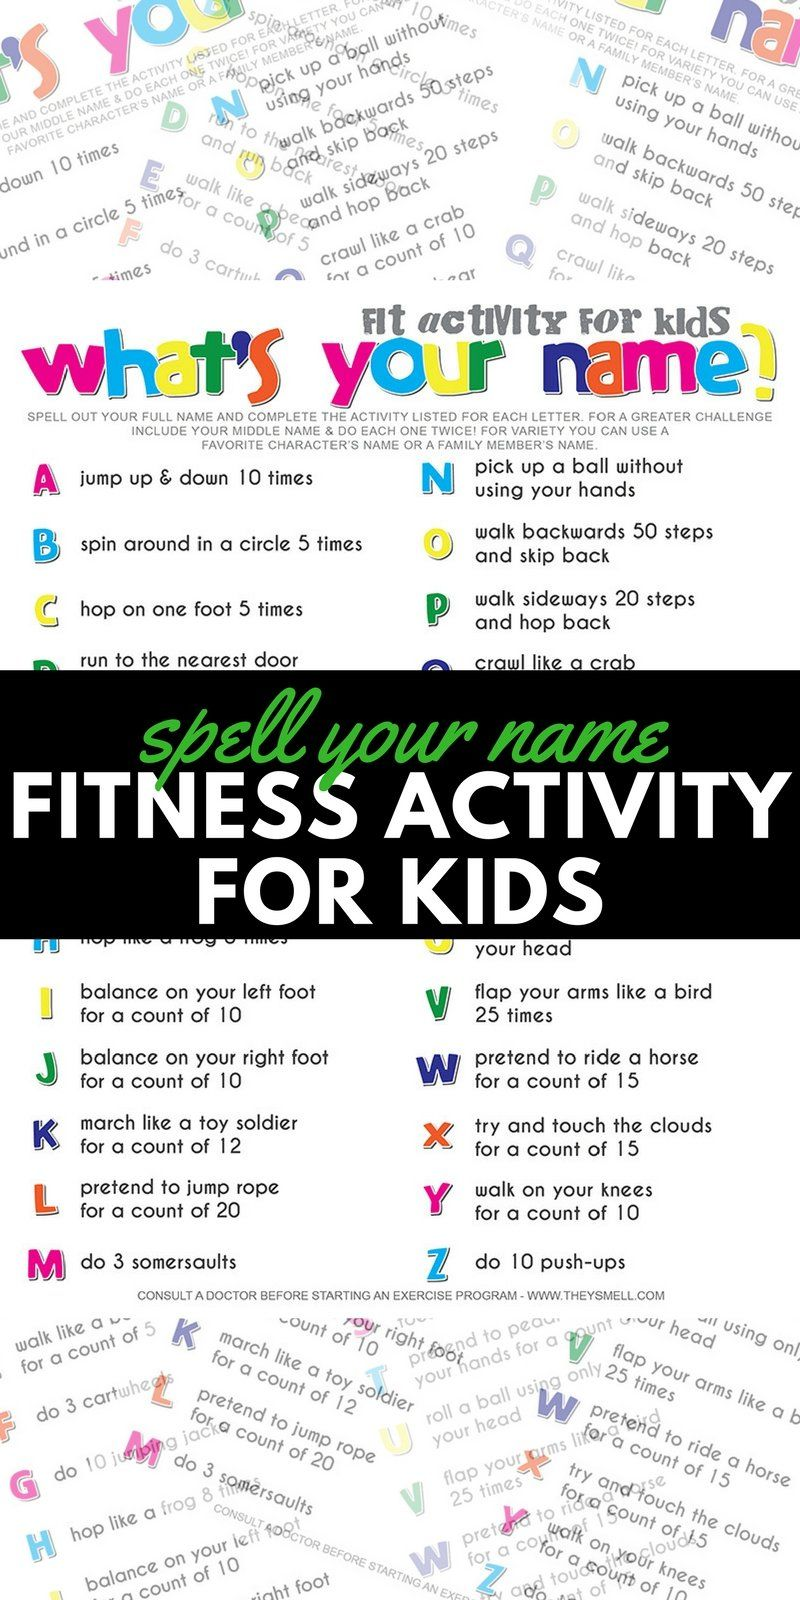 Spell Your Name Workout What S Your Name Fitness Activity Printable For Kids Spell Your Name Workout Exercise For Kids Workout Names